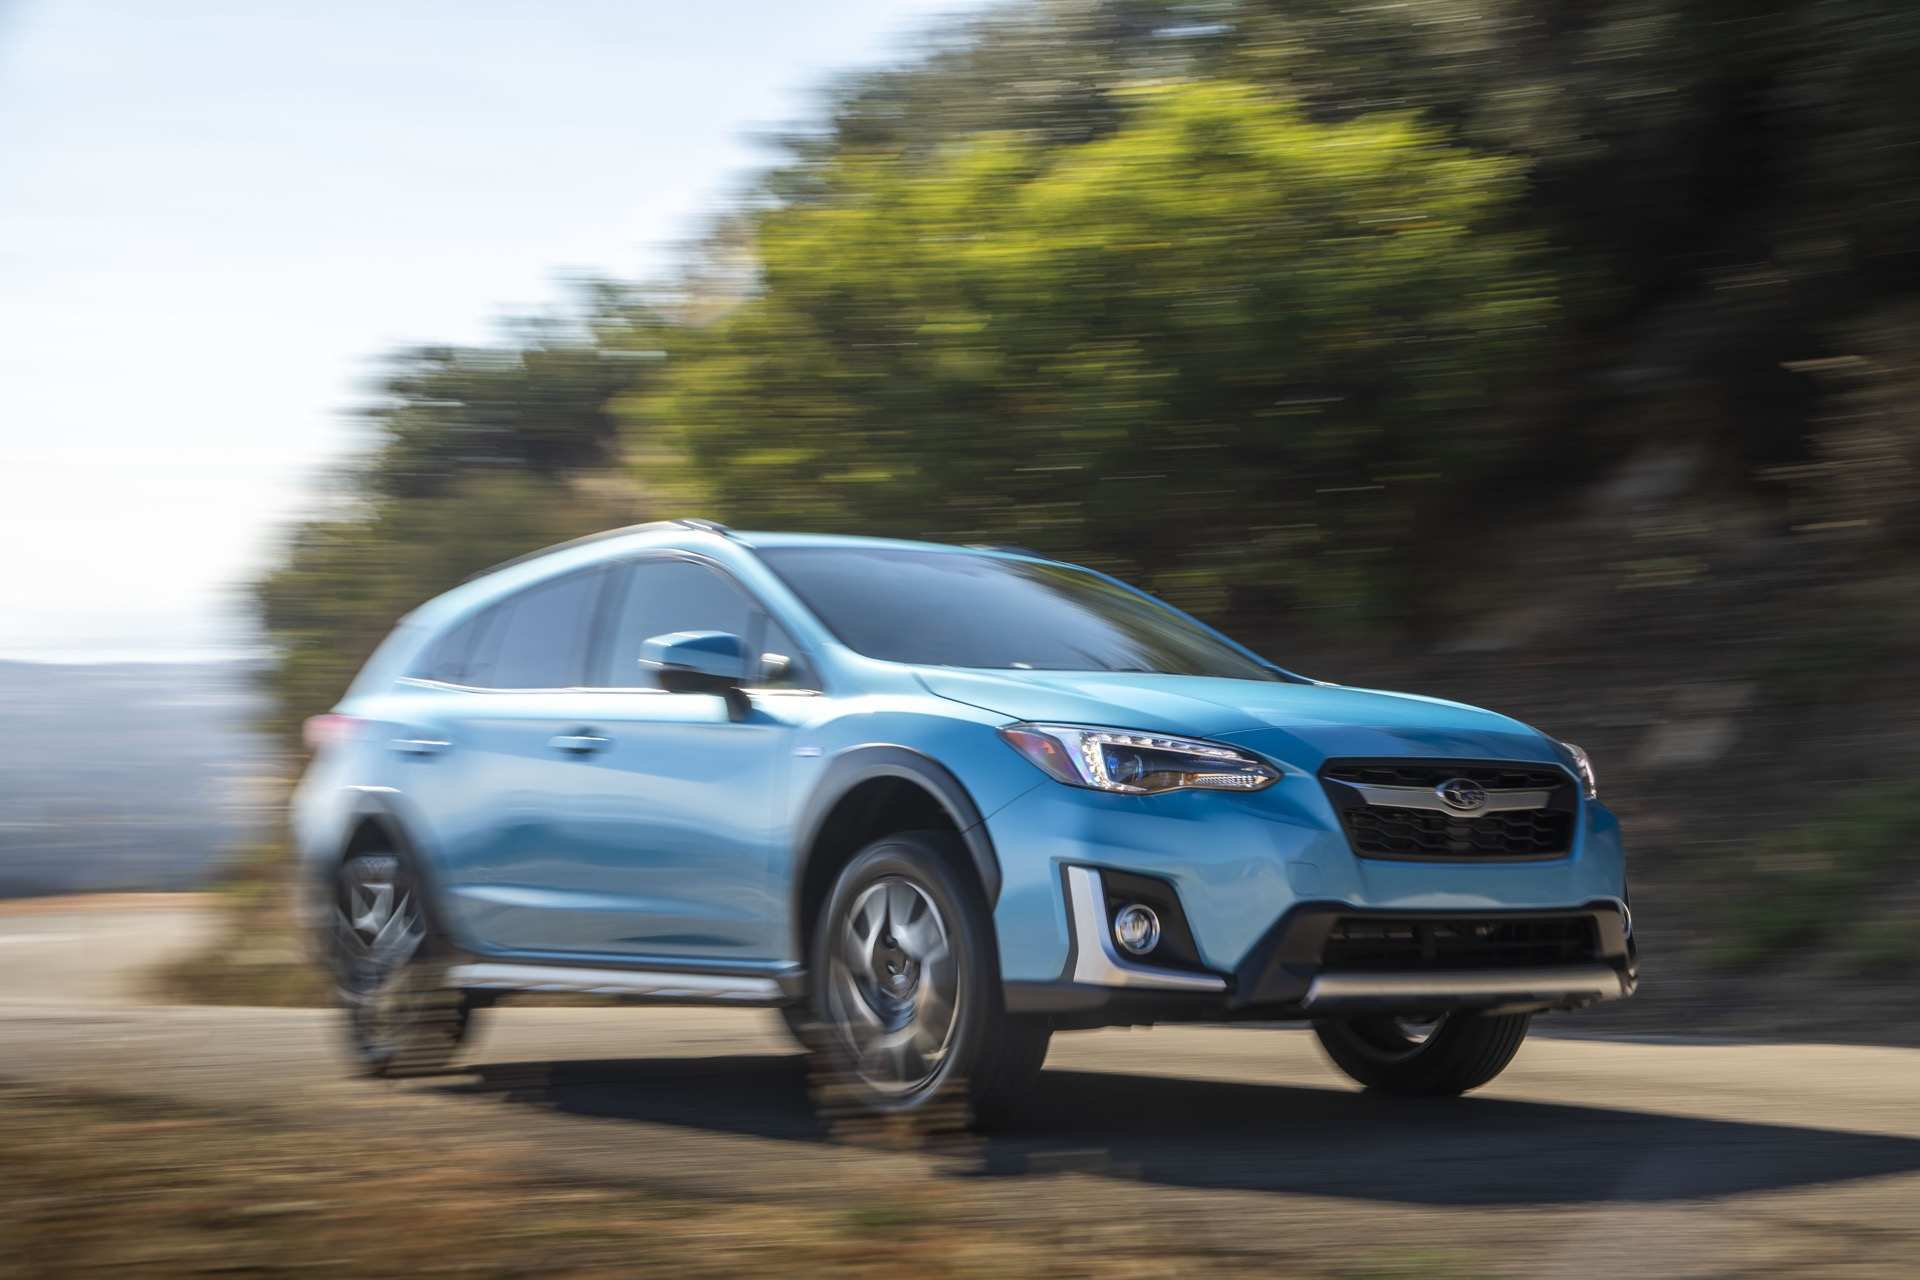 83 New Subaru Electric Car 2019 Review And Release Date